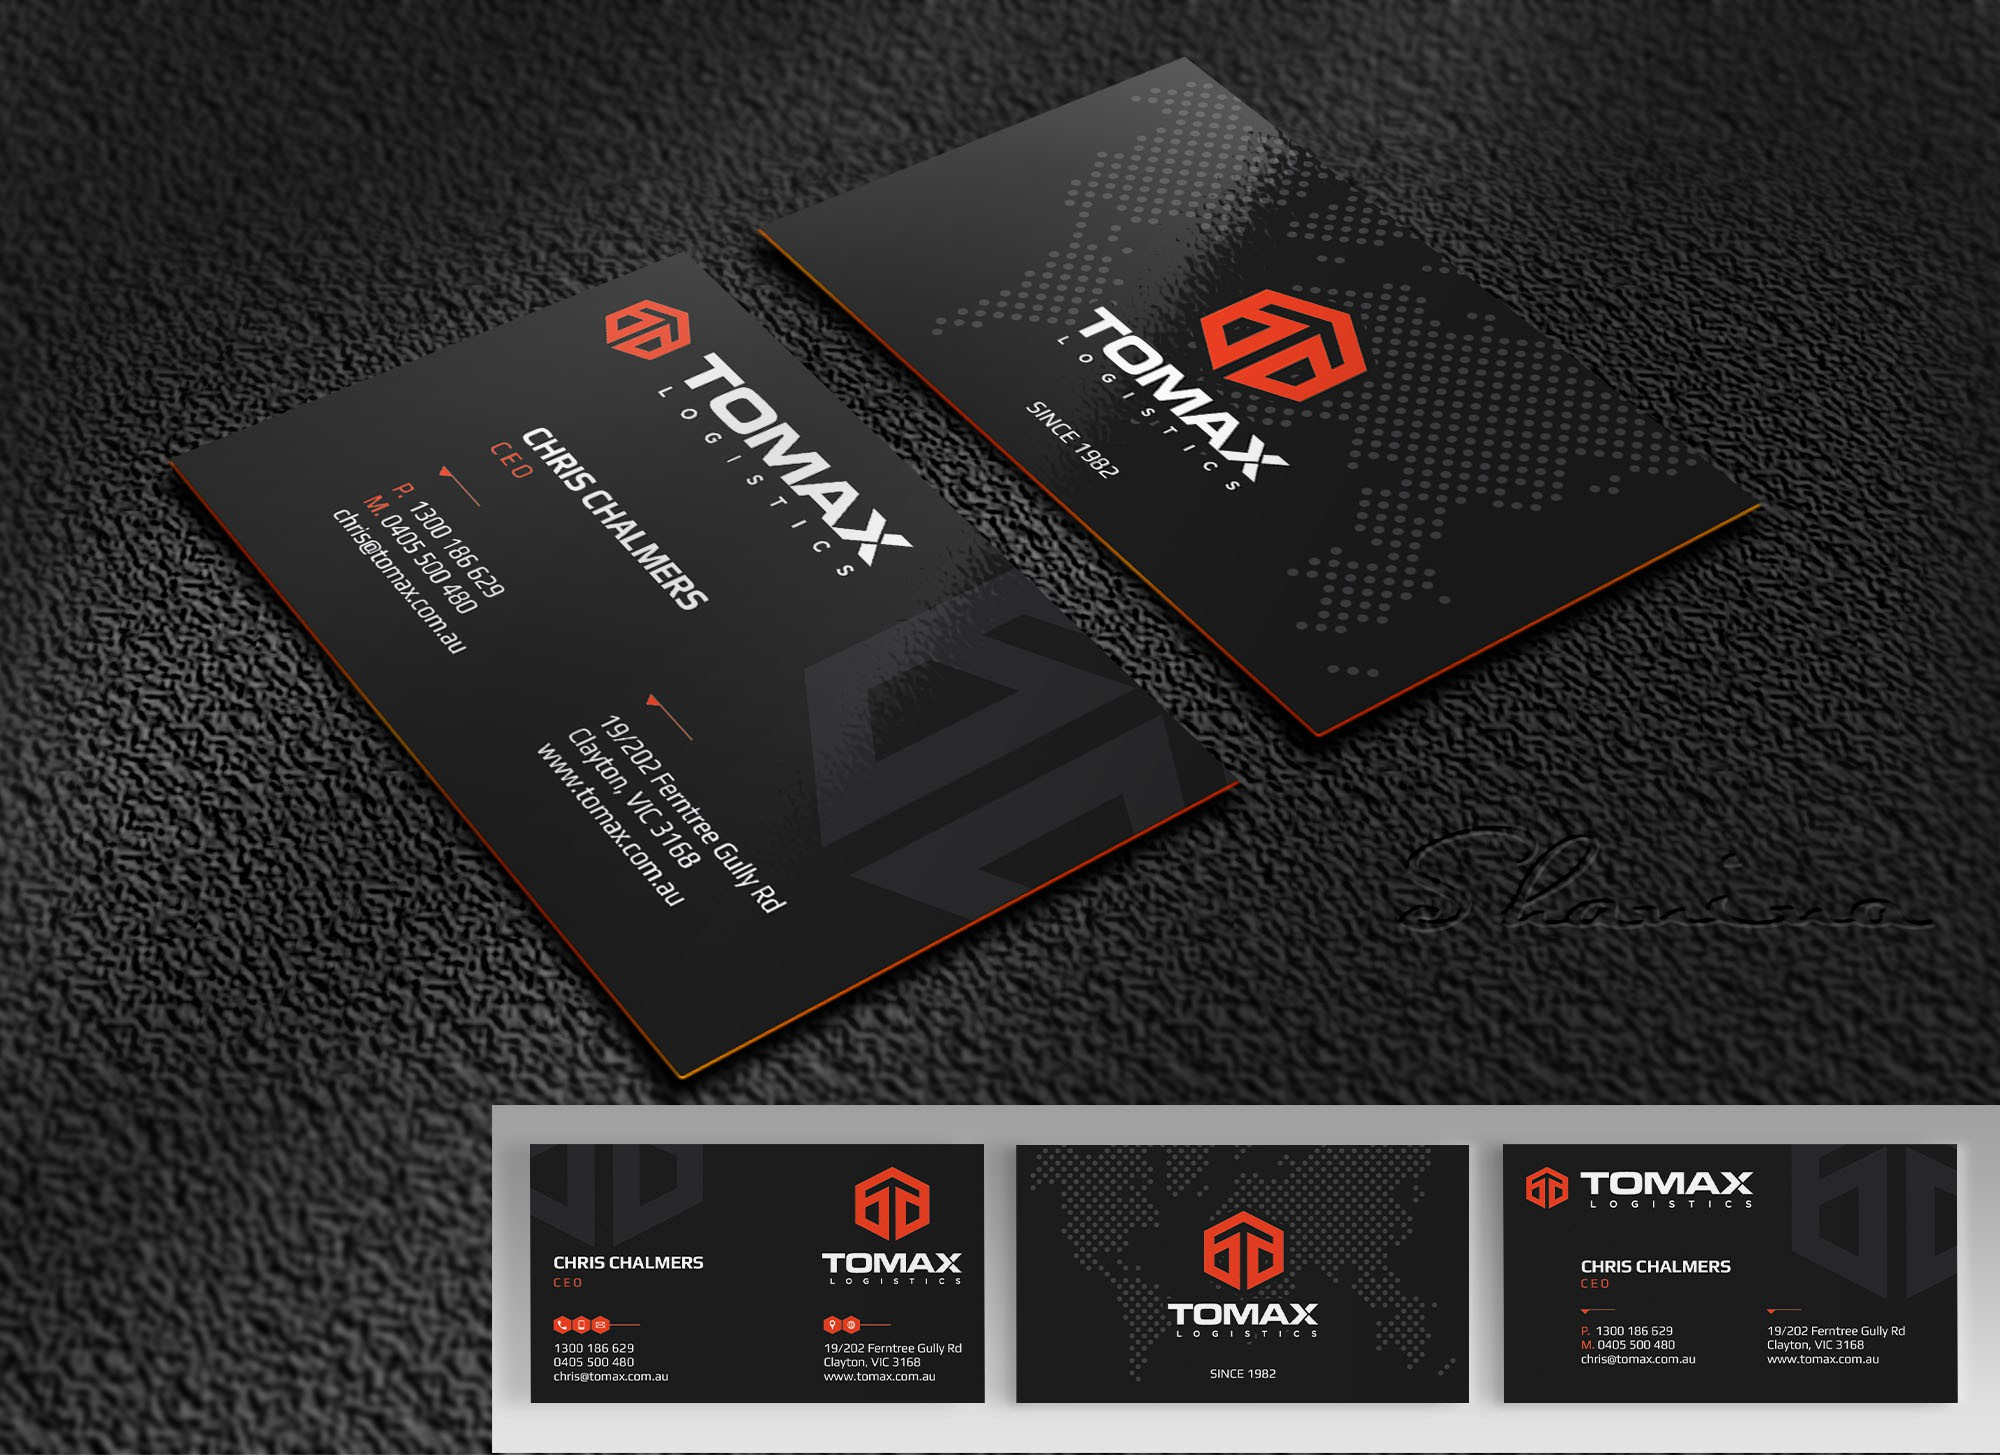 Tomax Business Cards